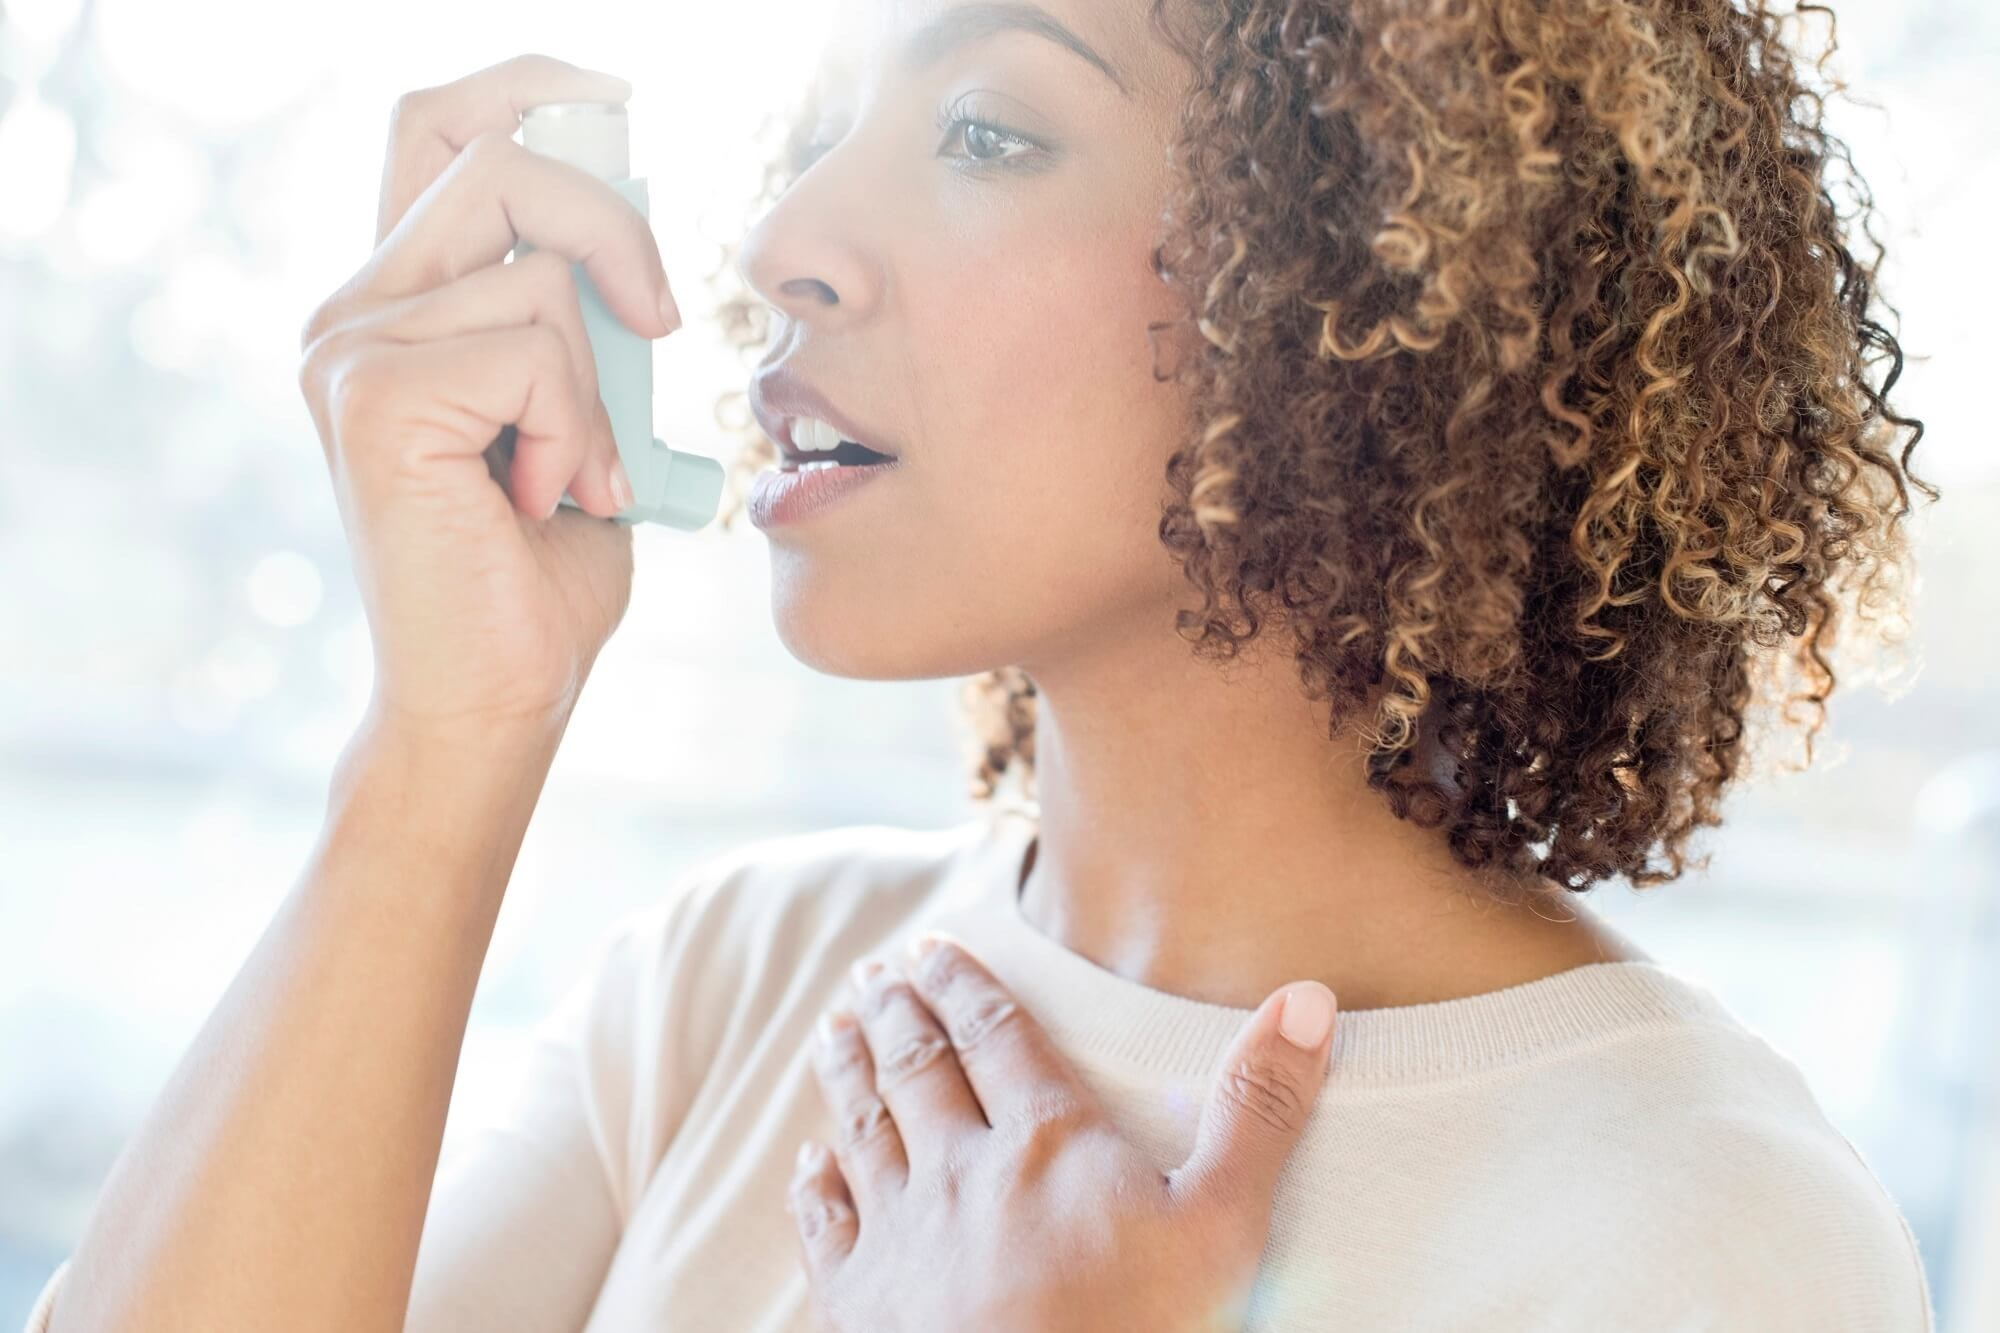 Benralizumab Reduces Rescue Medication Use in Severe Eosinophilic Asthma